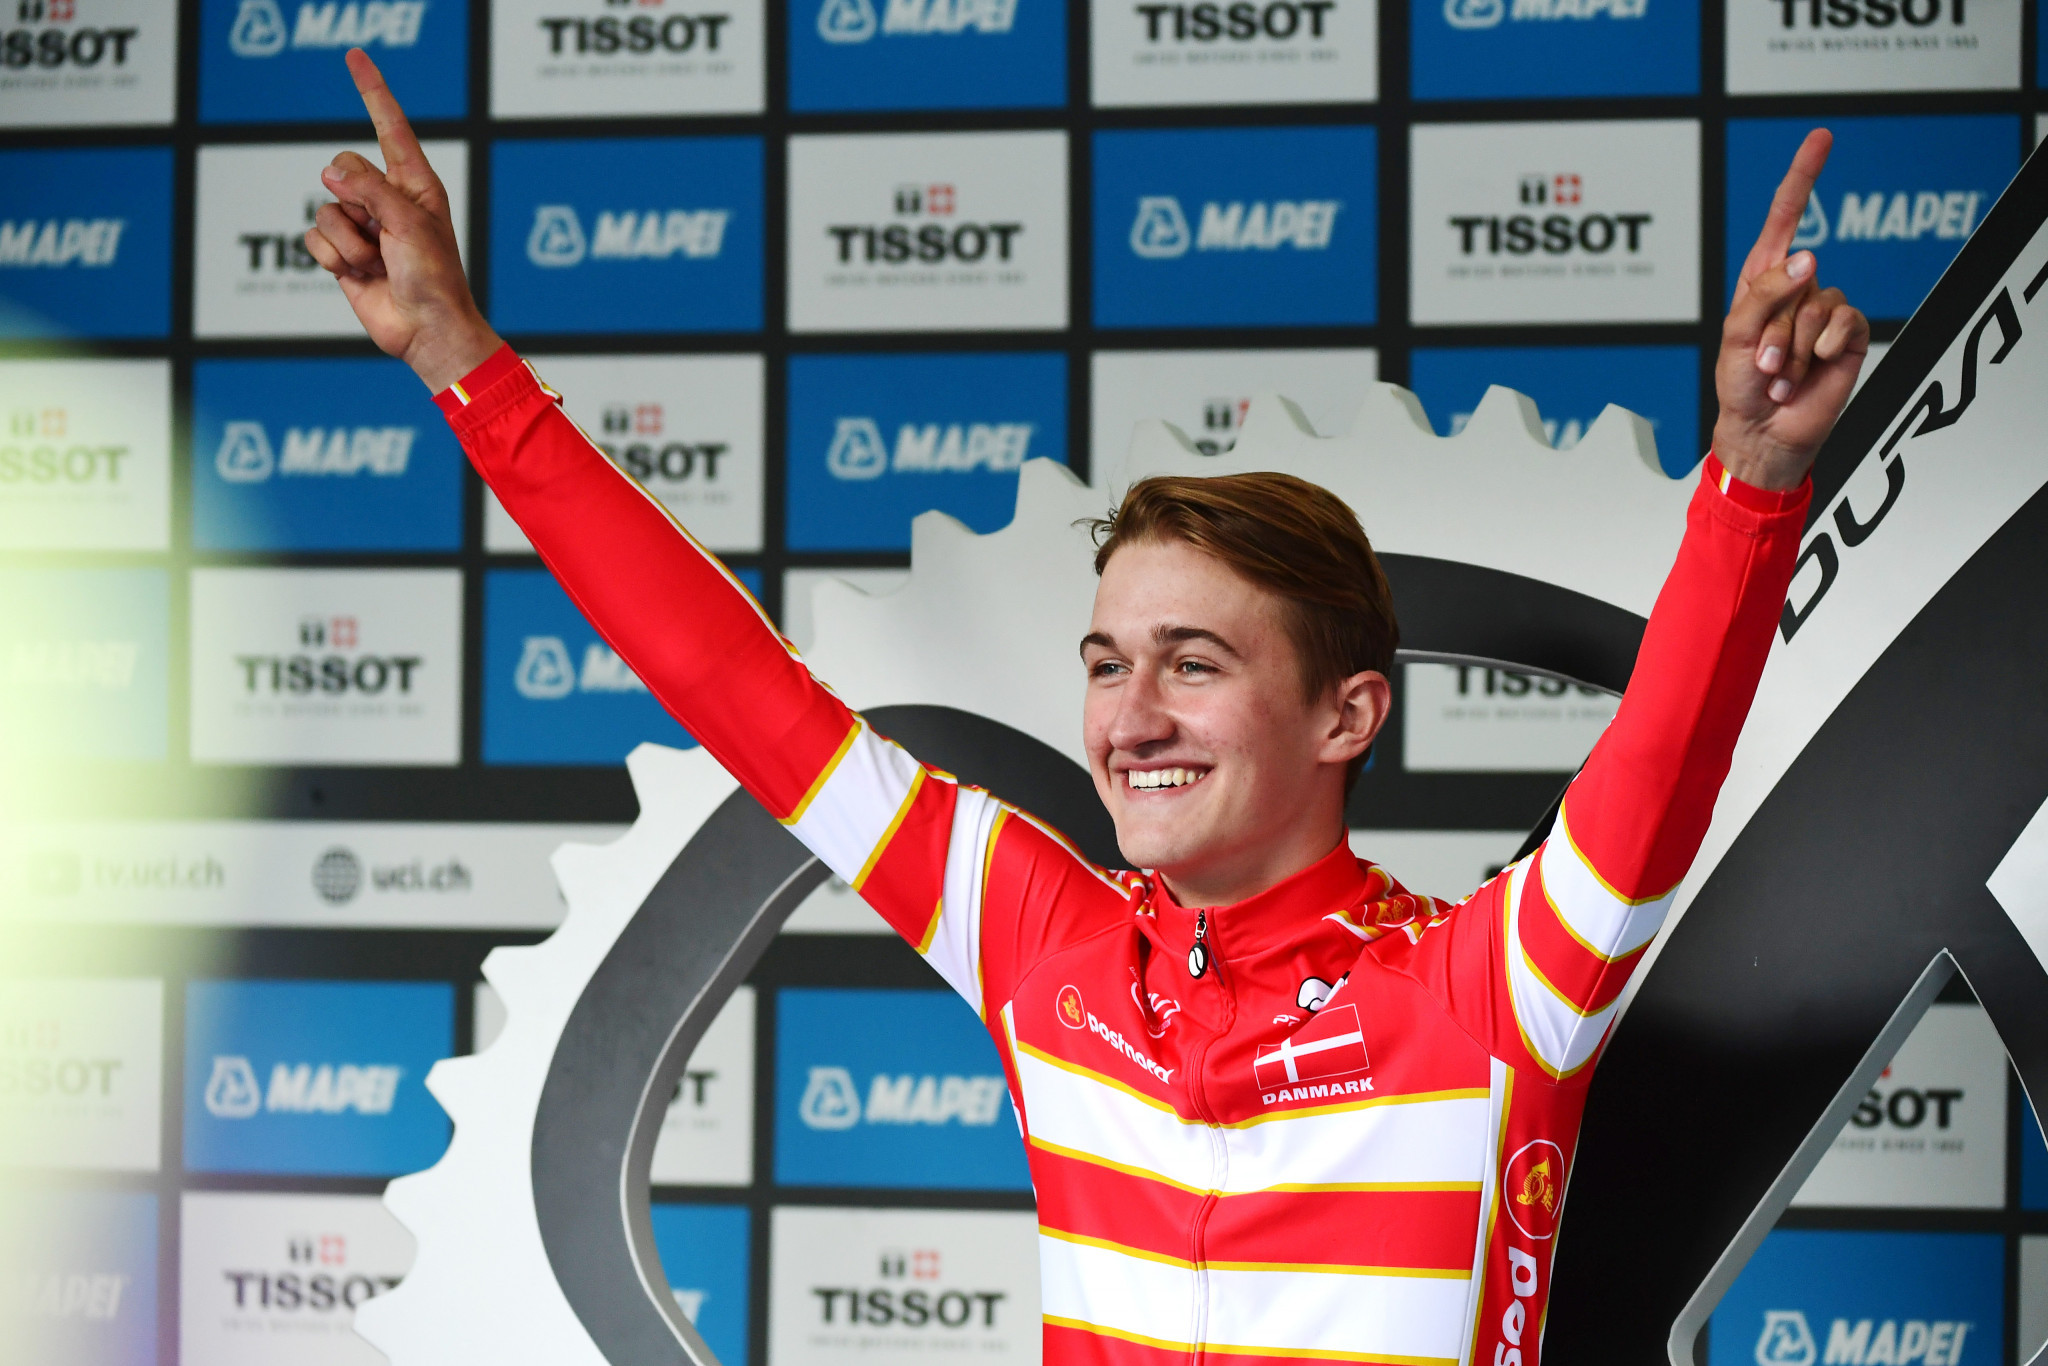 Bjerg dominates men's under-23 time trial at UCI World Road Championships in Bergen